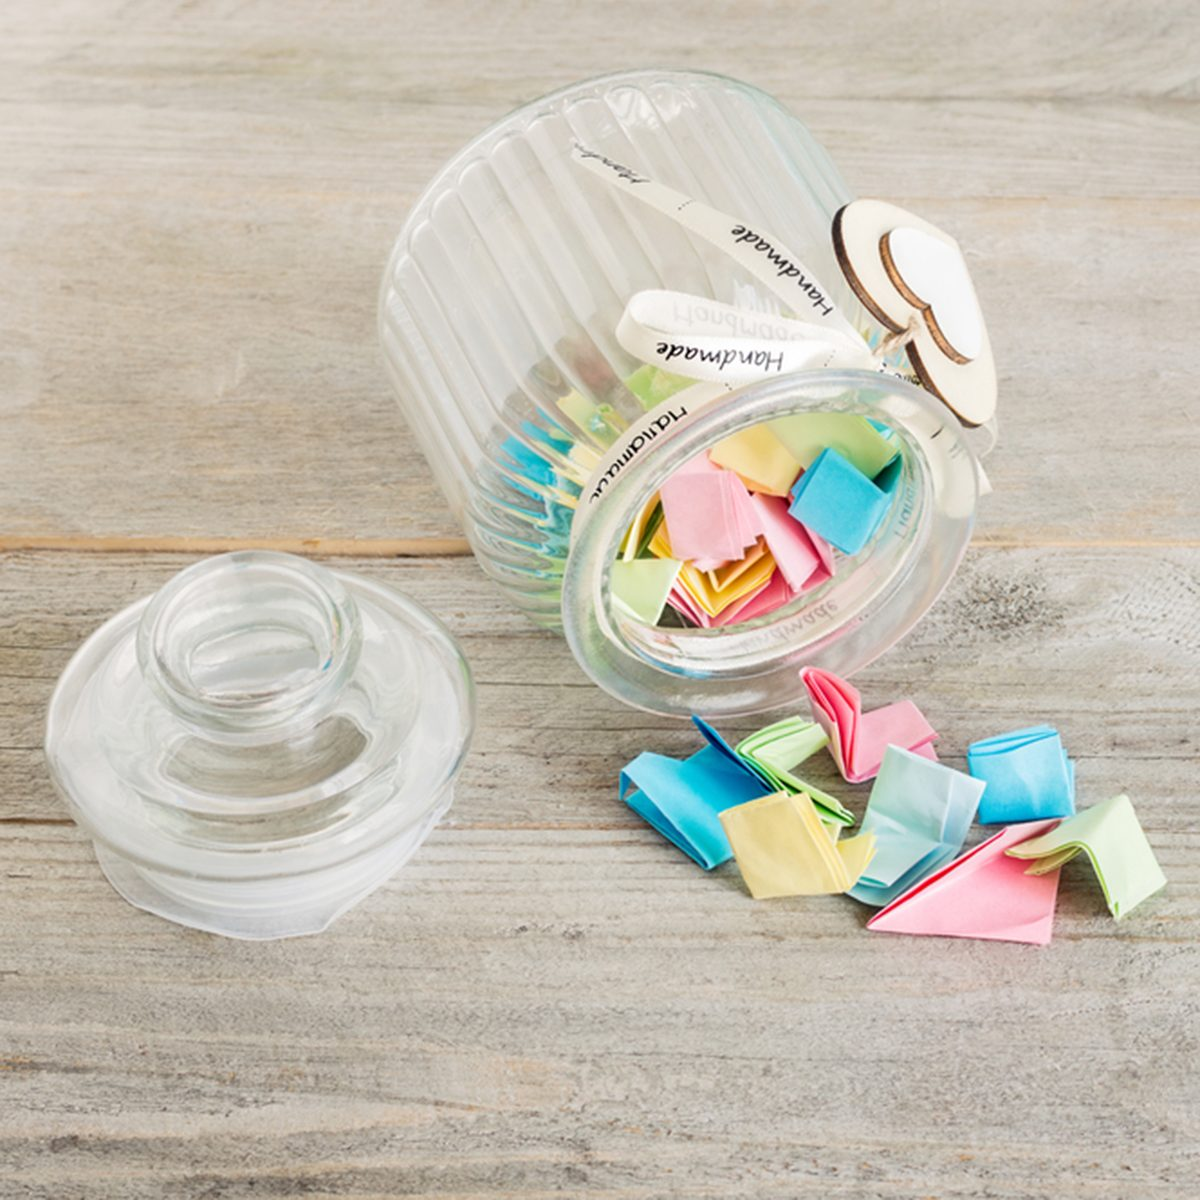 Glass jar with handmade wooden hearts decorations and ribbon filled with colorful pastel paper notes spilling over.; Shutterstock ID 696530689; Job (TFH, TOH, RD, BNB, CWM, CM): TOH